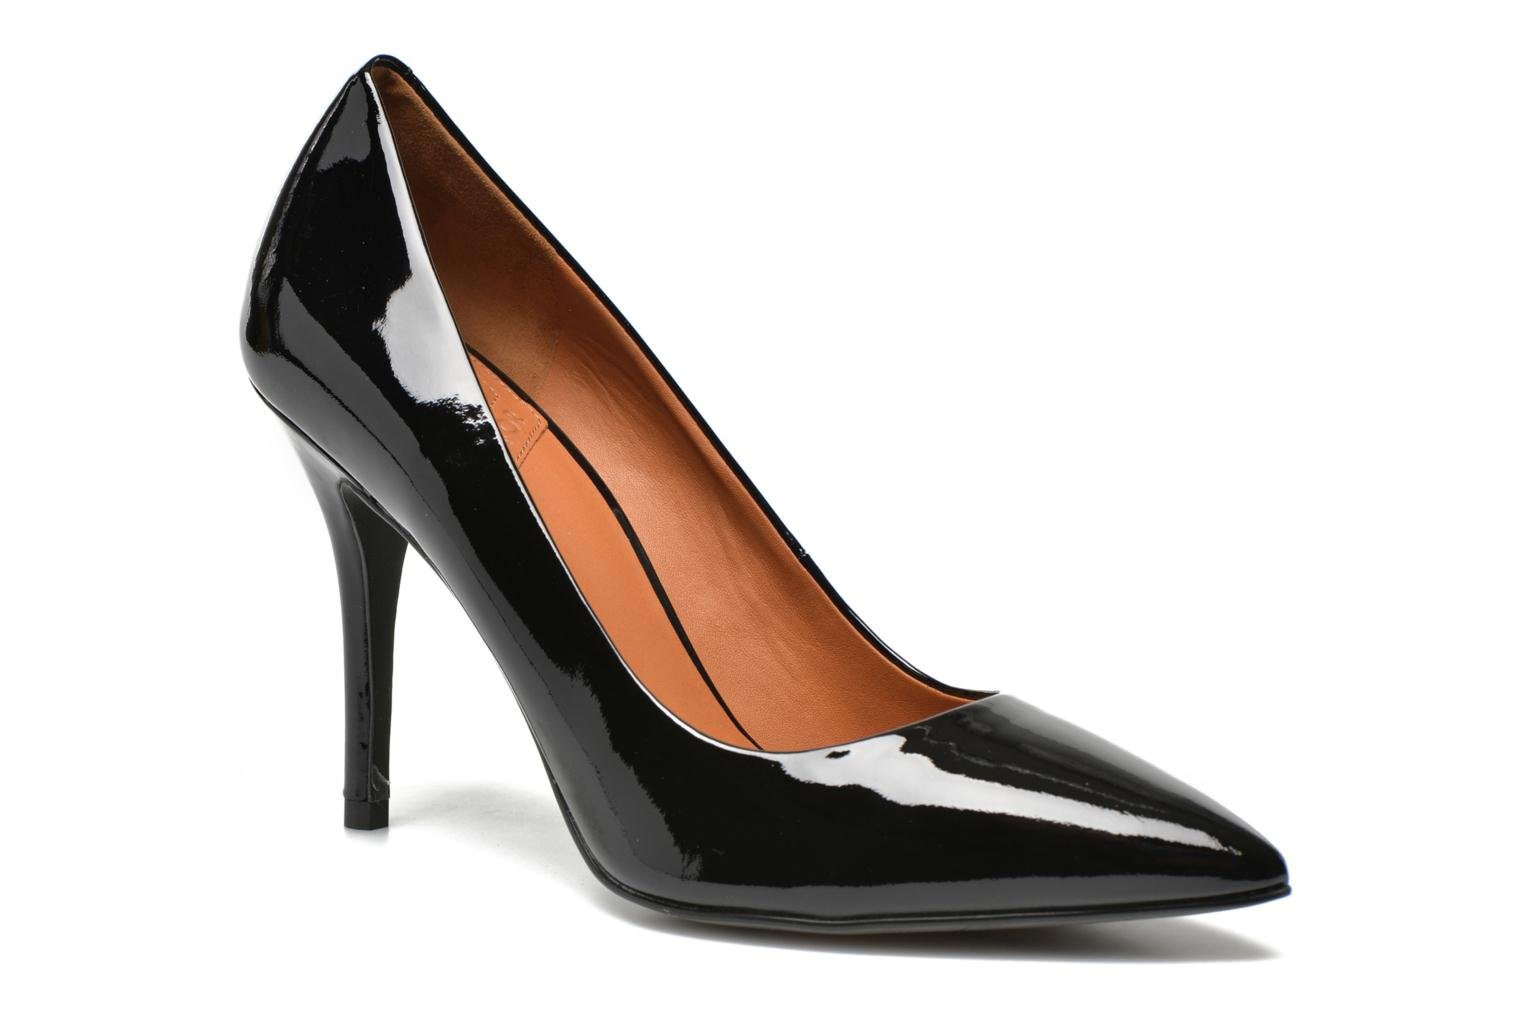 Pumps Katherine by What For